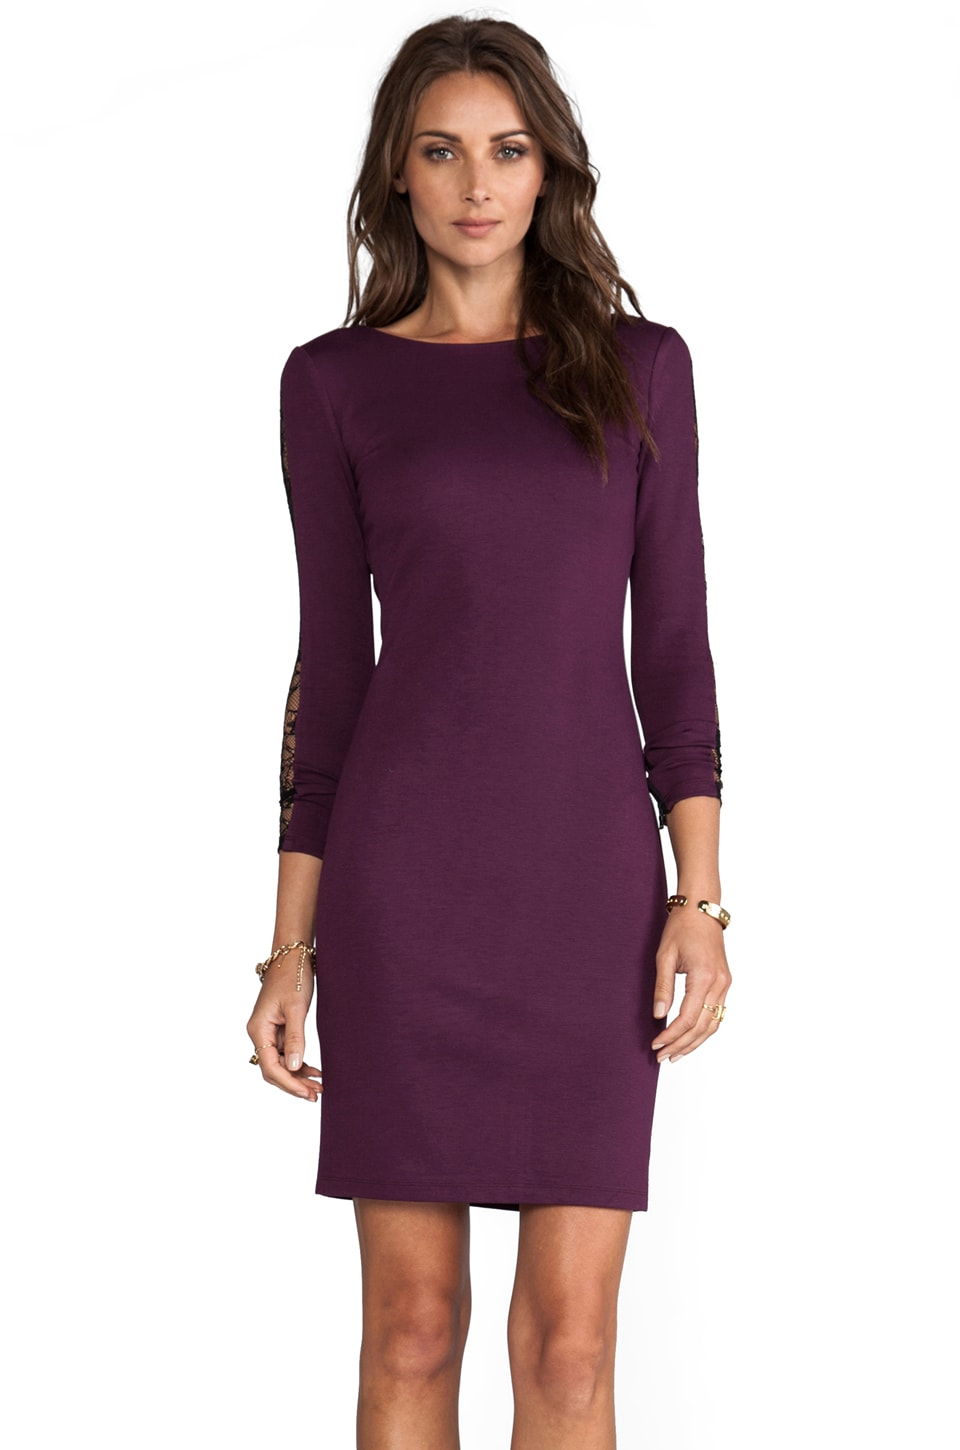 Alice + Olivia Dionne Strong Shoulder Diamond Back Dress in Deep Grape